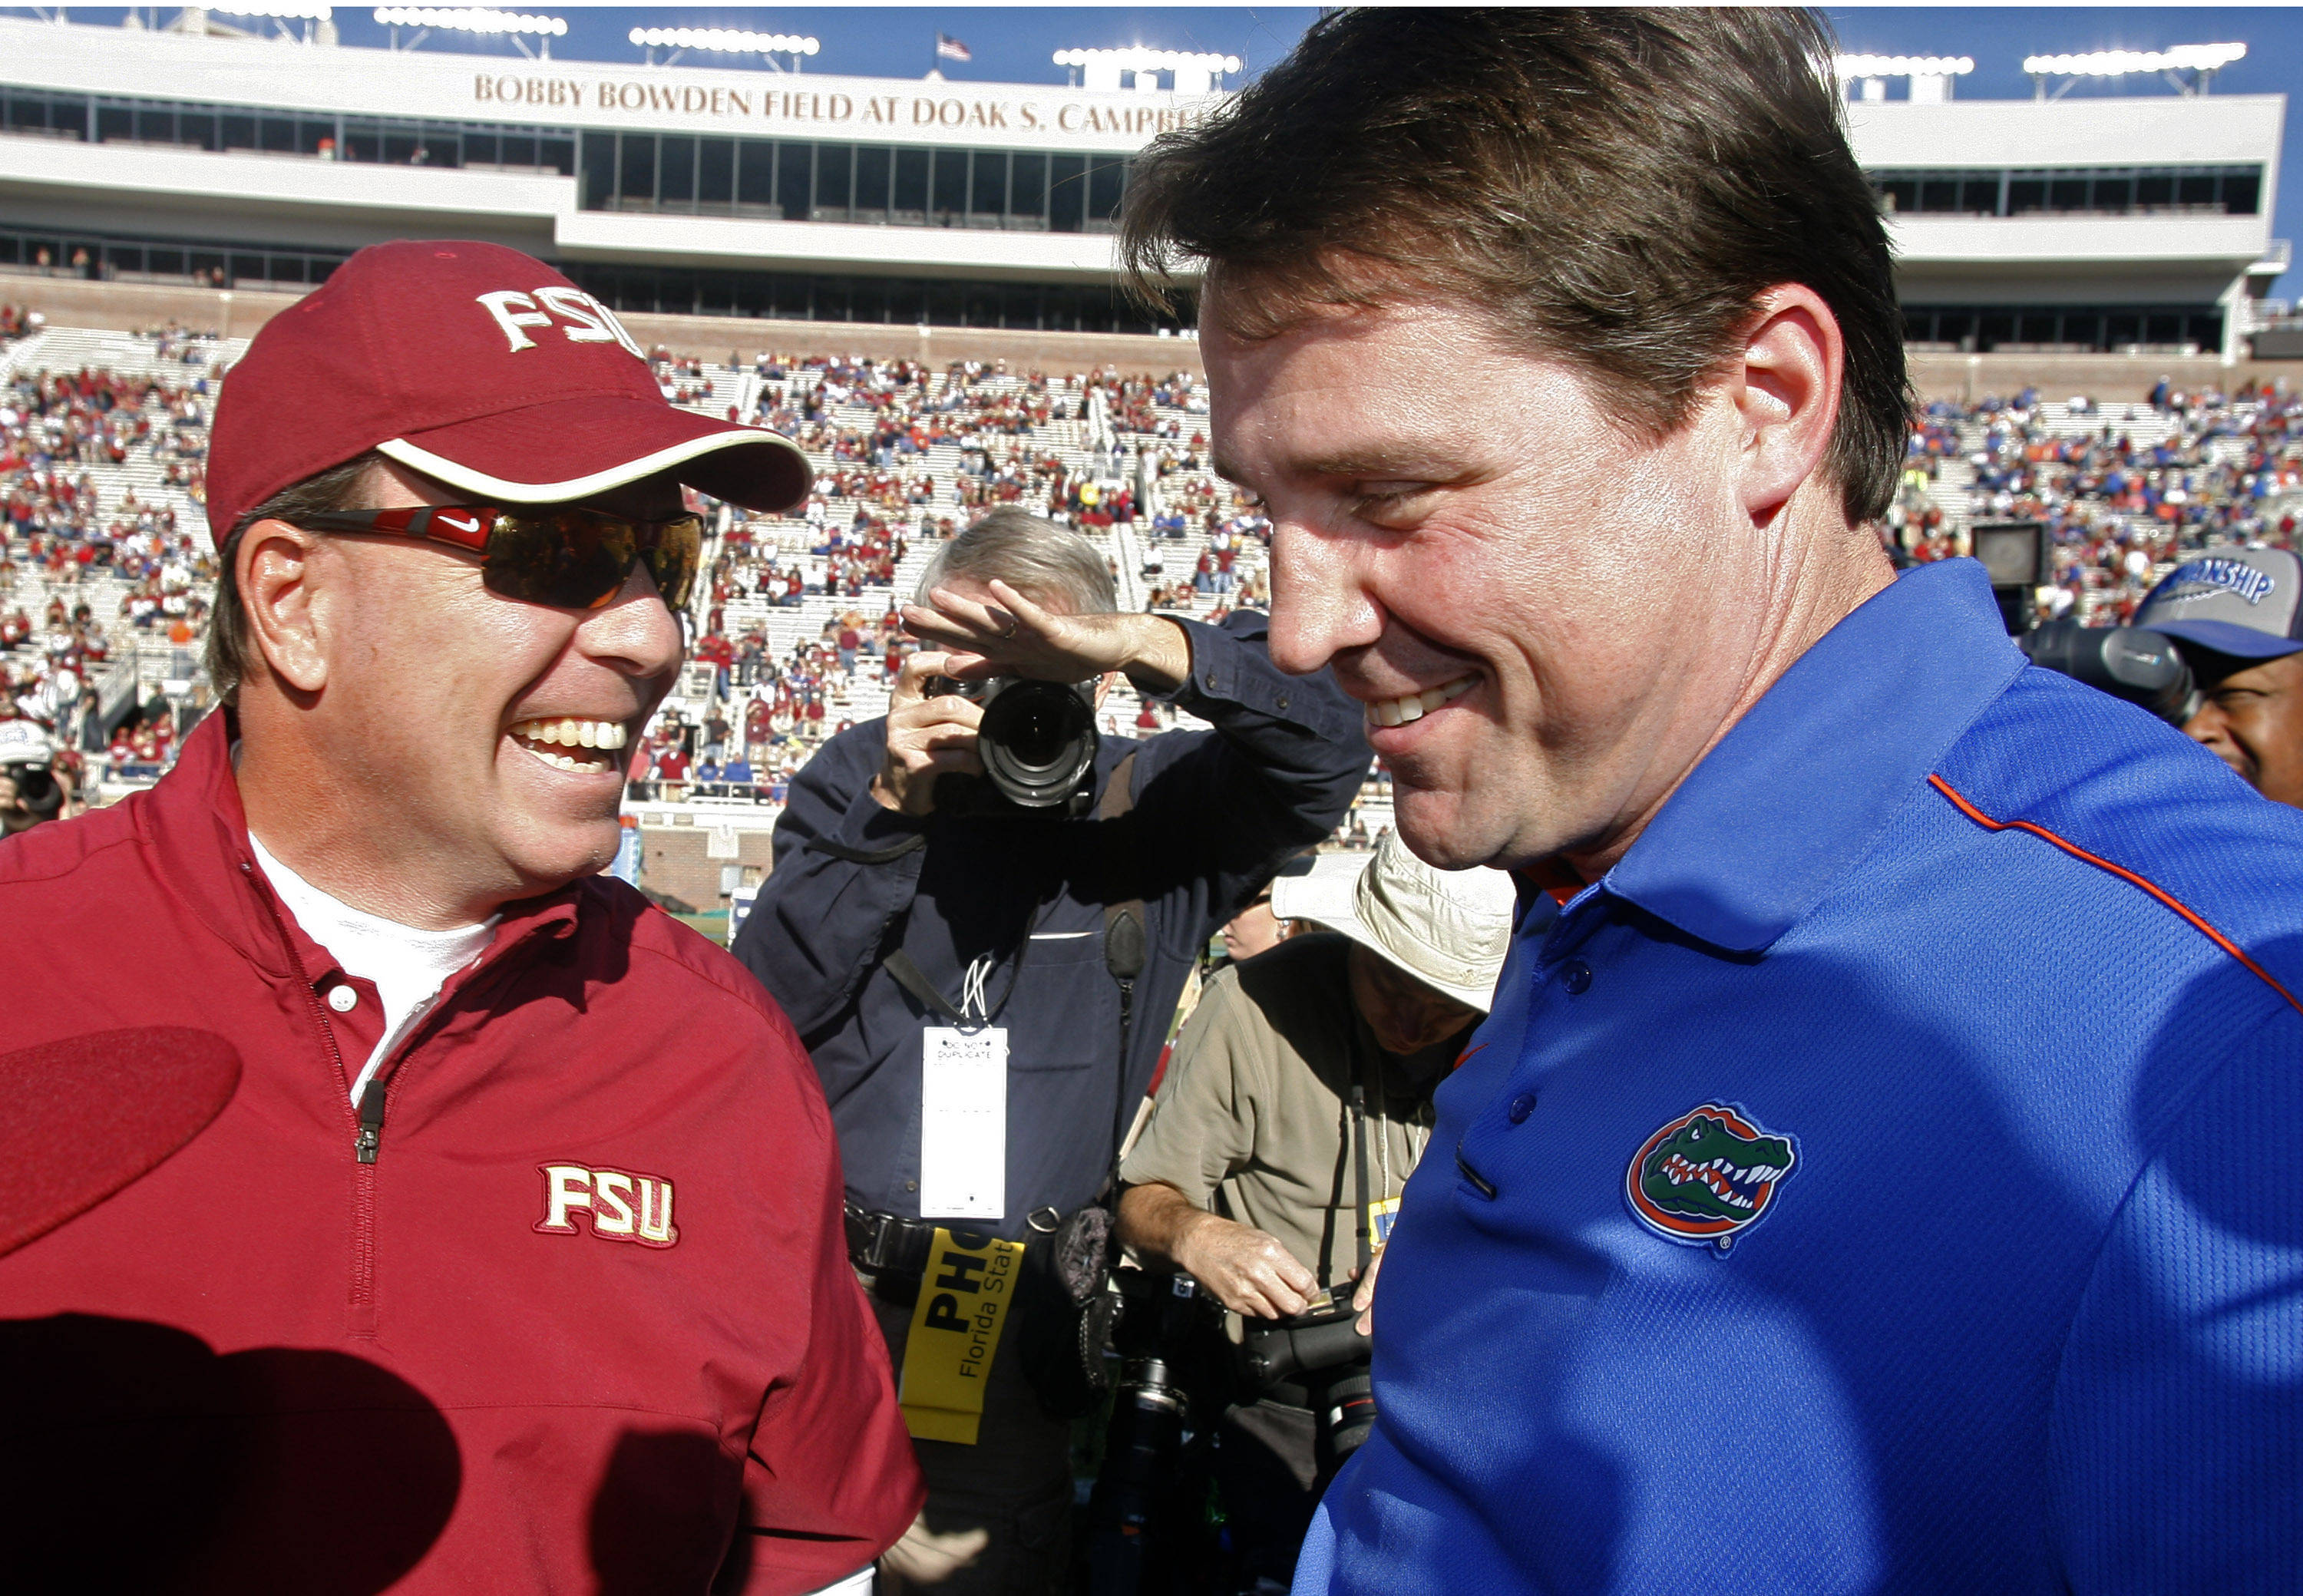 Florida State head coach Jimbo Fisher, left, greets Florida head coach Will Muschamp on the field prior to the game. (AP Photo/Phil Sears)